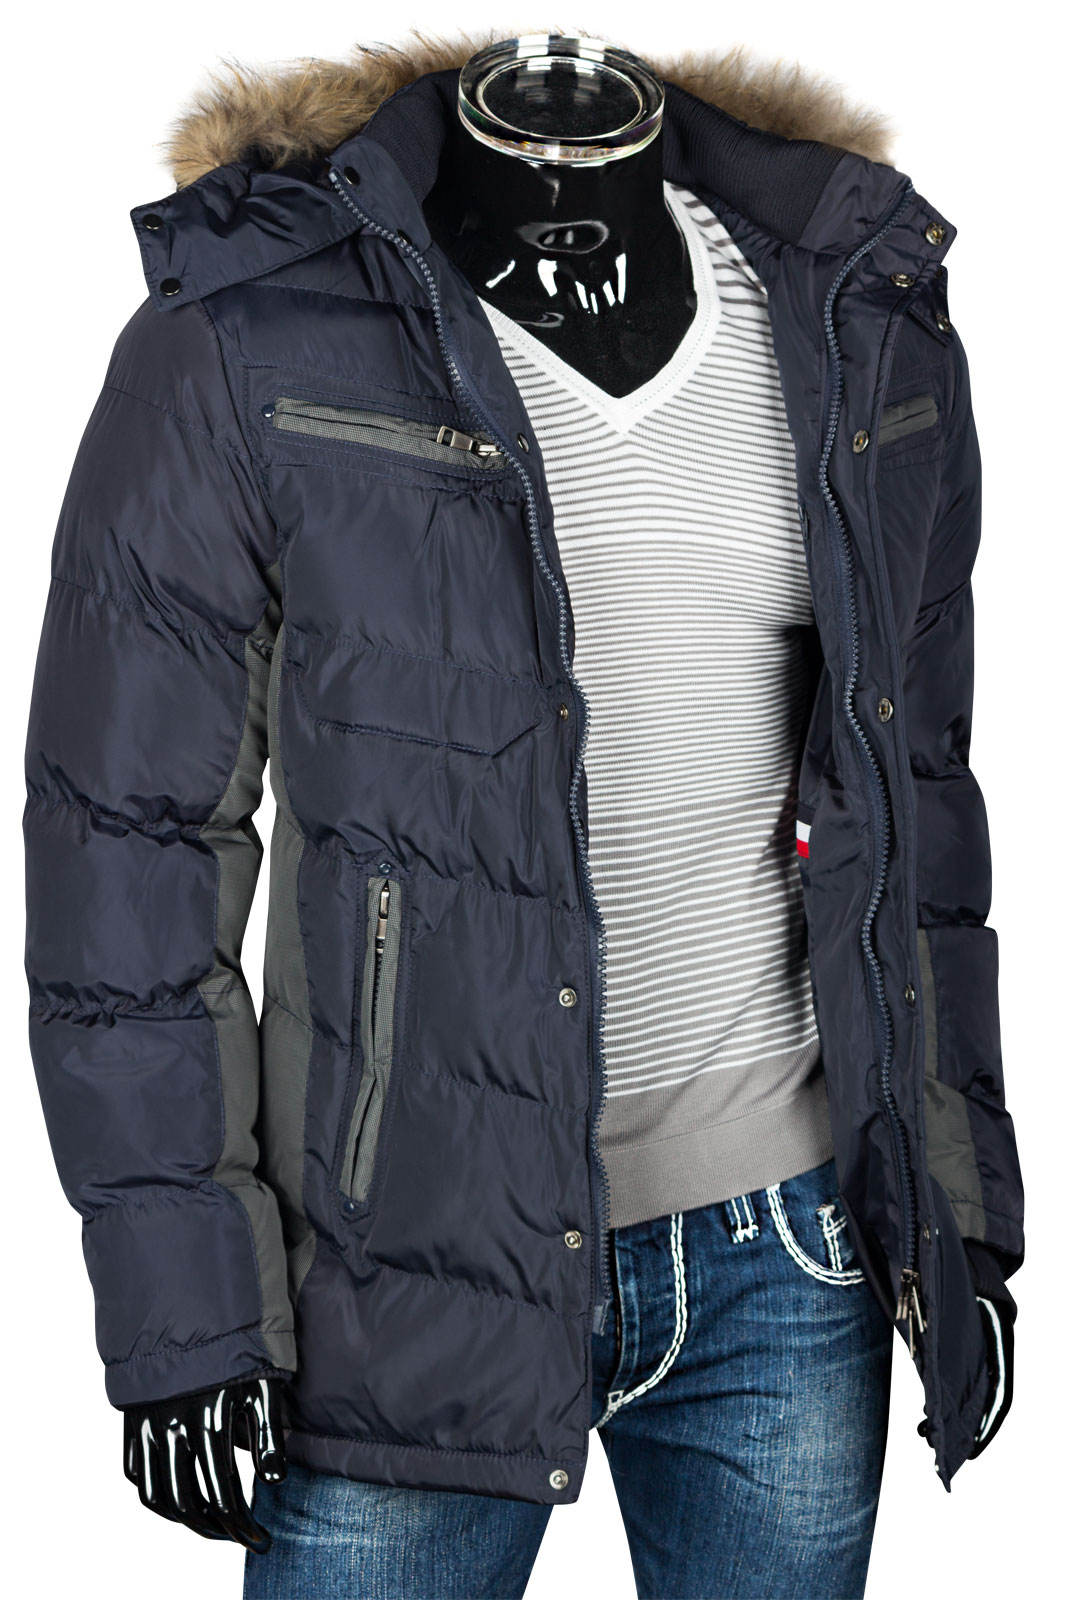 herren steppjacke winter jacke parka daunen look mantel alaska echz fell kapuze ebay. Black Bedroom Furniture Sets. Home Design Ideas